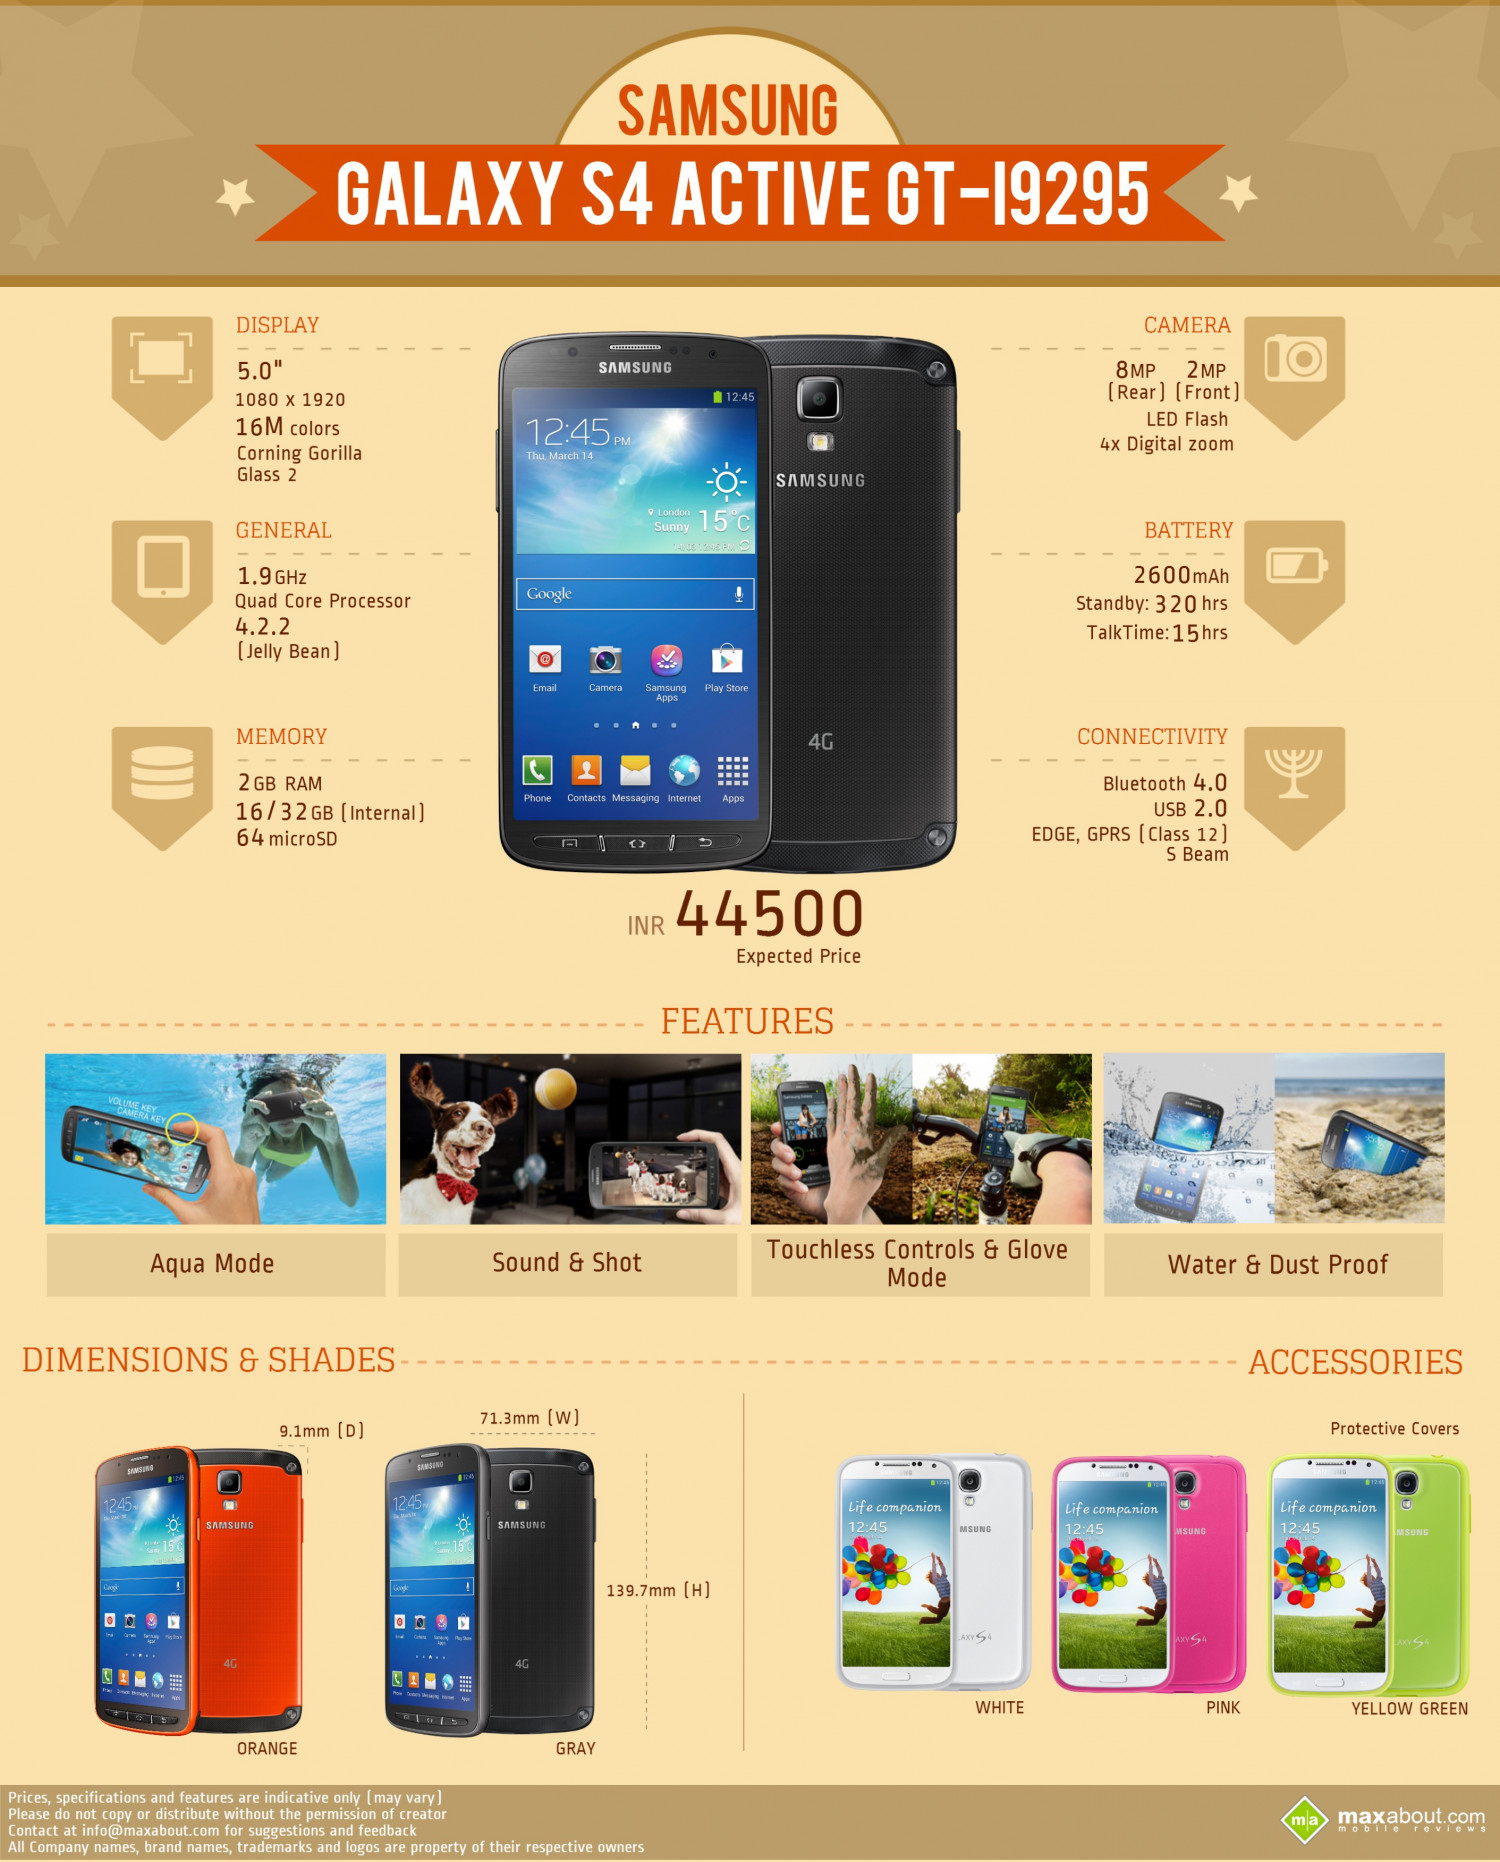 Samsung Galaxy S4 Active: Specifications and Expected Price Infographic